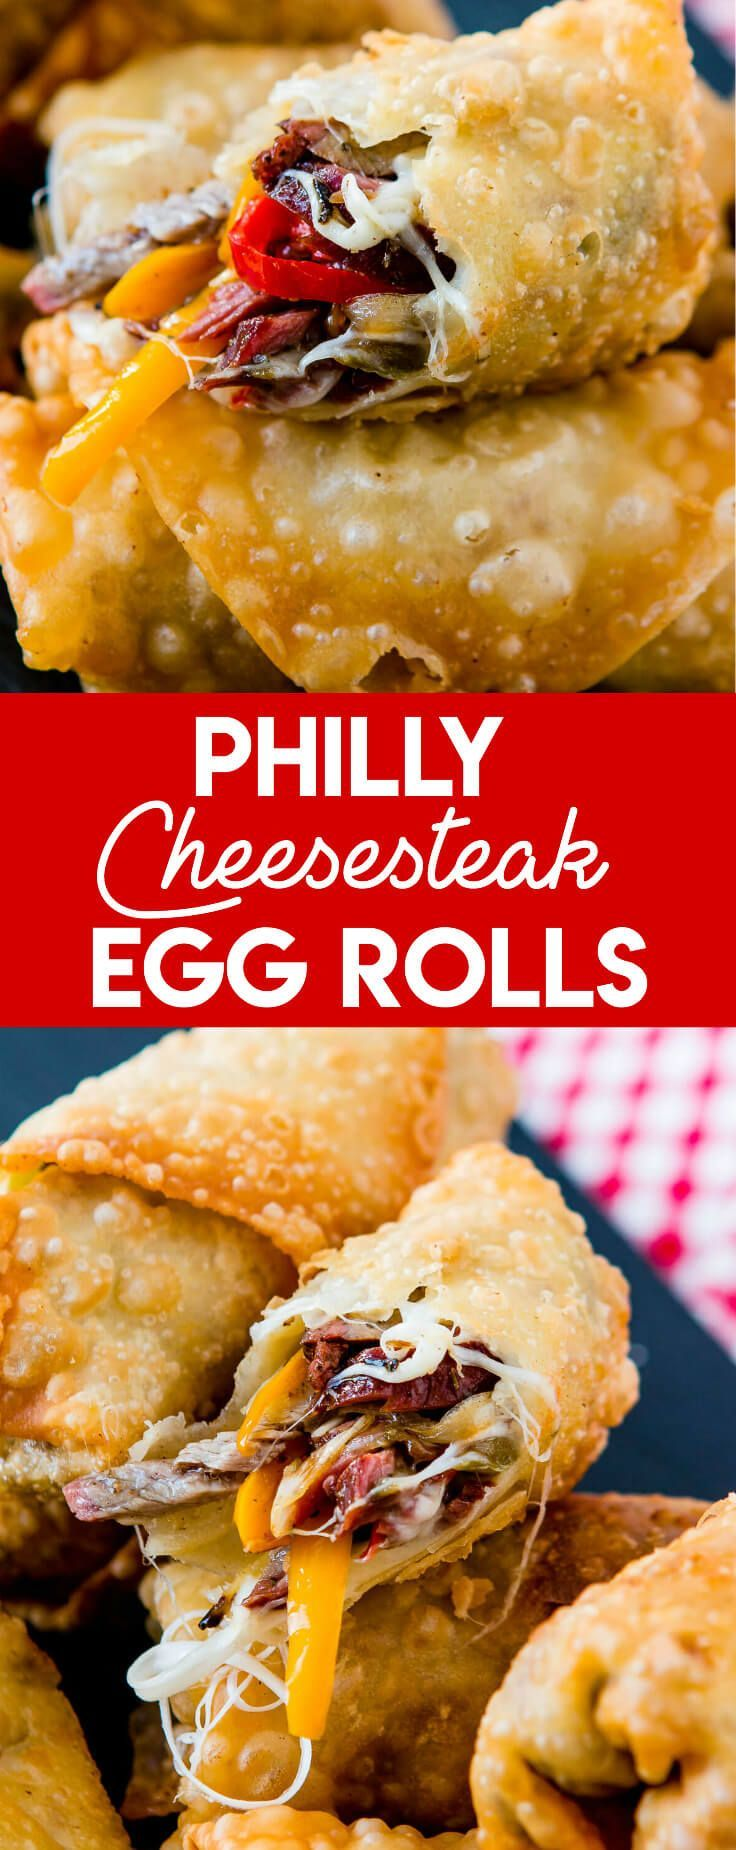 Who wouldn't love a crisp, fried egg roll full of meat and cheese? These Philly Cheesesteak Egg Rolls are perfect for football games and parties! via @ohsweetbasil